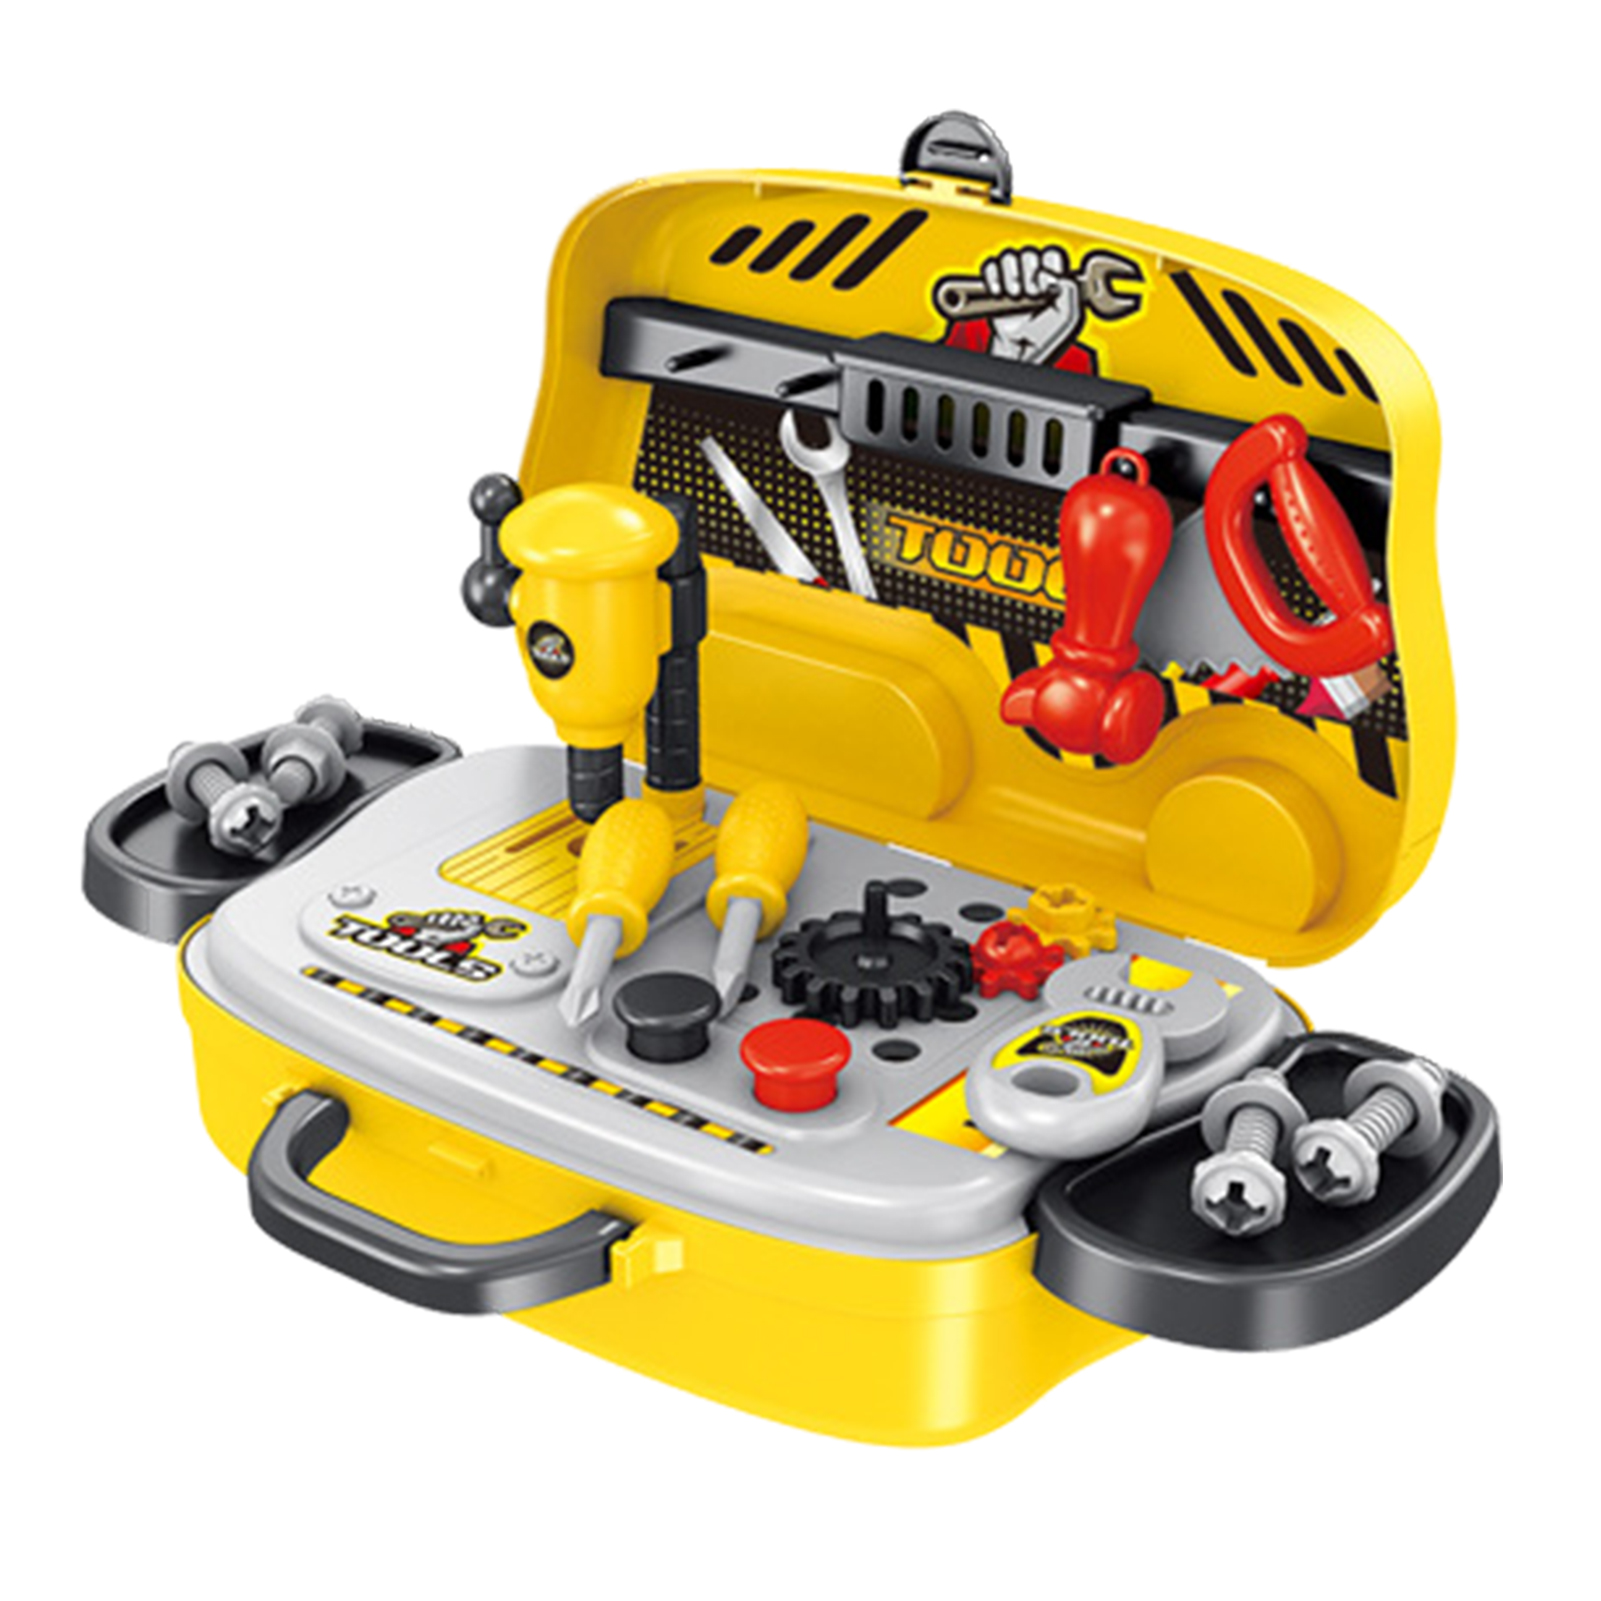 Boys Repair Tools Kit Pretend Play Toy Safe Fun Educational Toy For Boys Tools For Construction Portable Design Easy To Carry